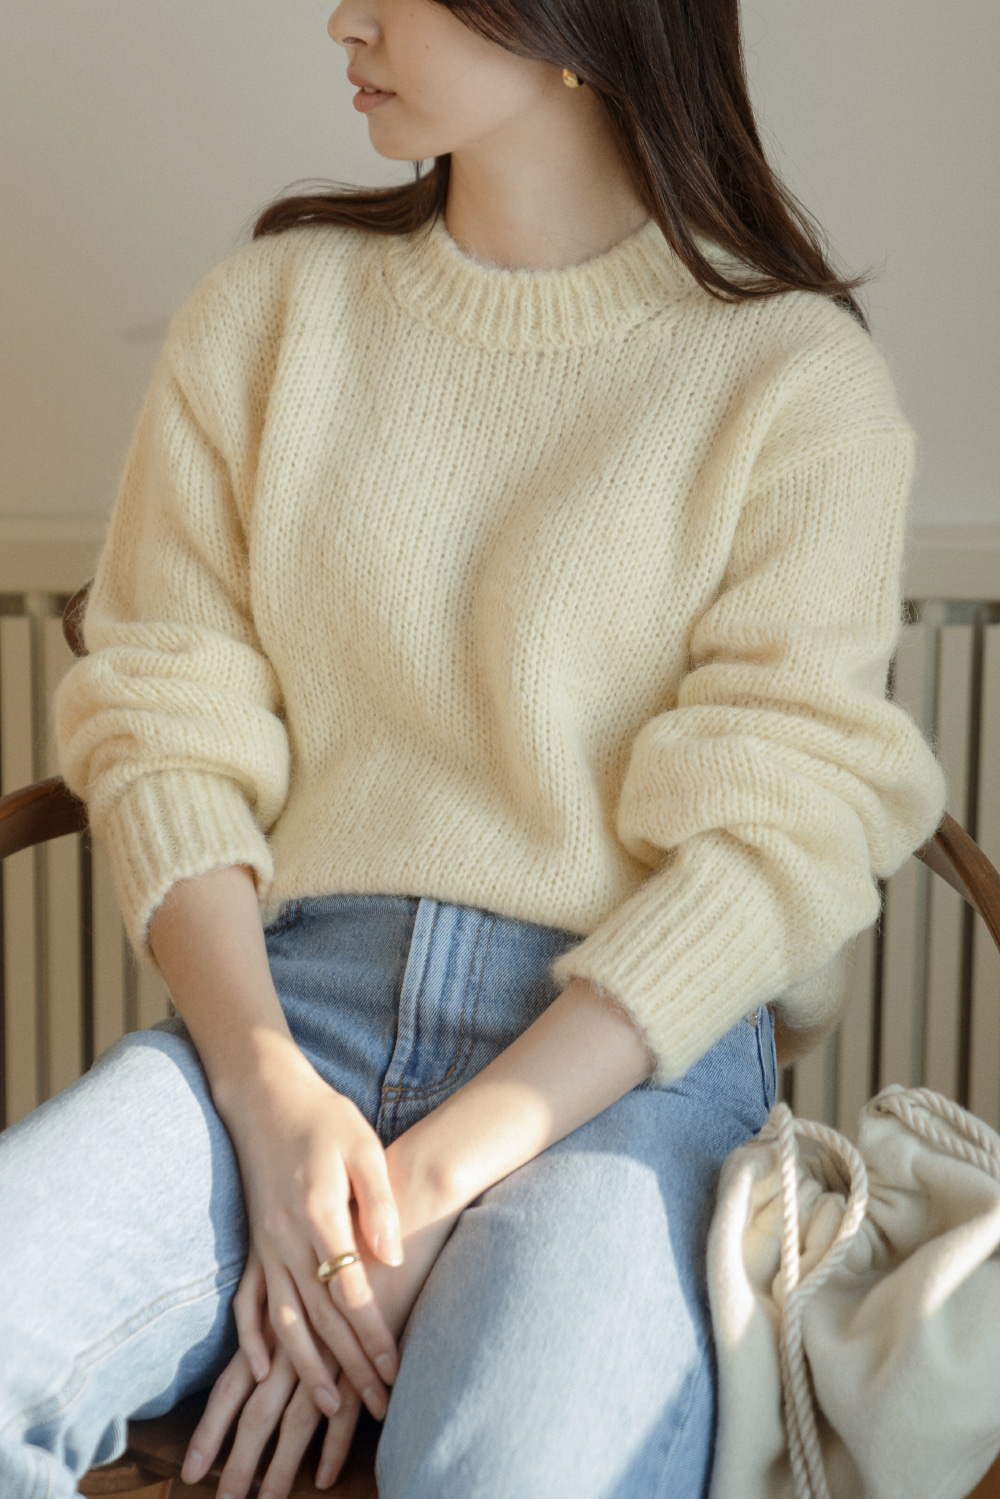 8622_Alpaca round knit [ New Season / 10% DC ] 26일 PM 6 마감